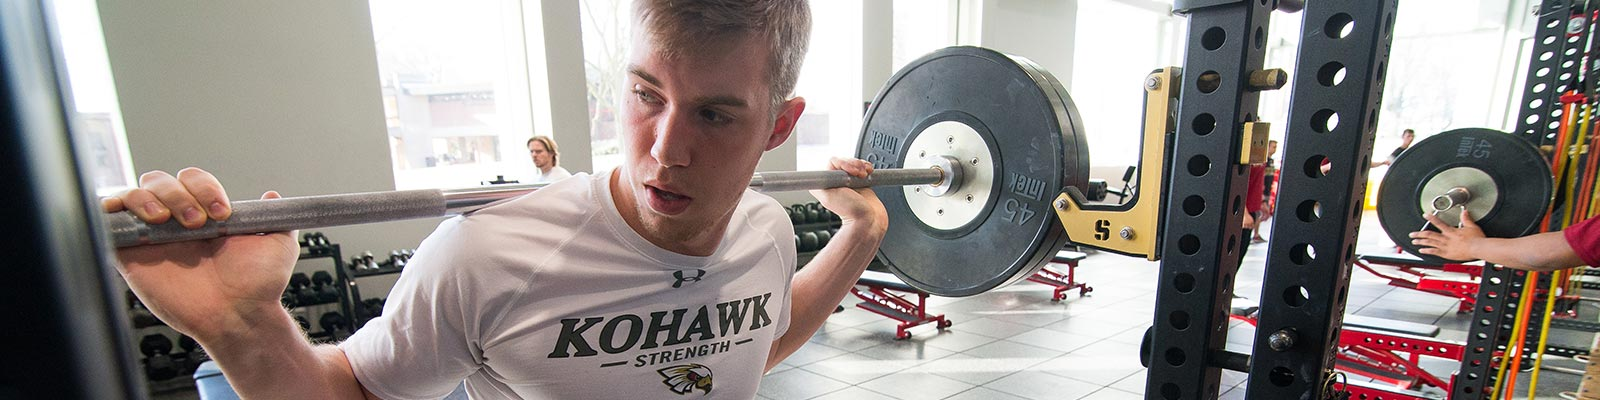 Coe student lifting weights